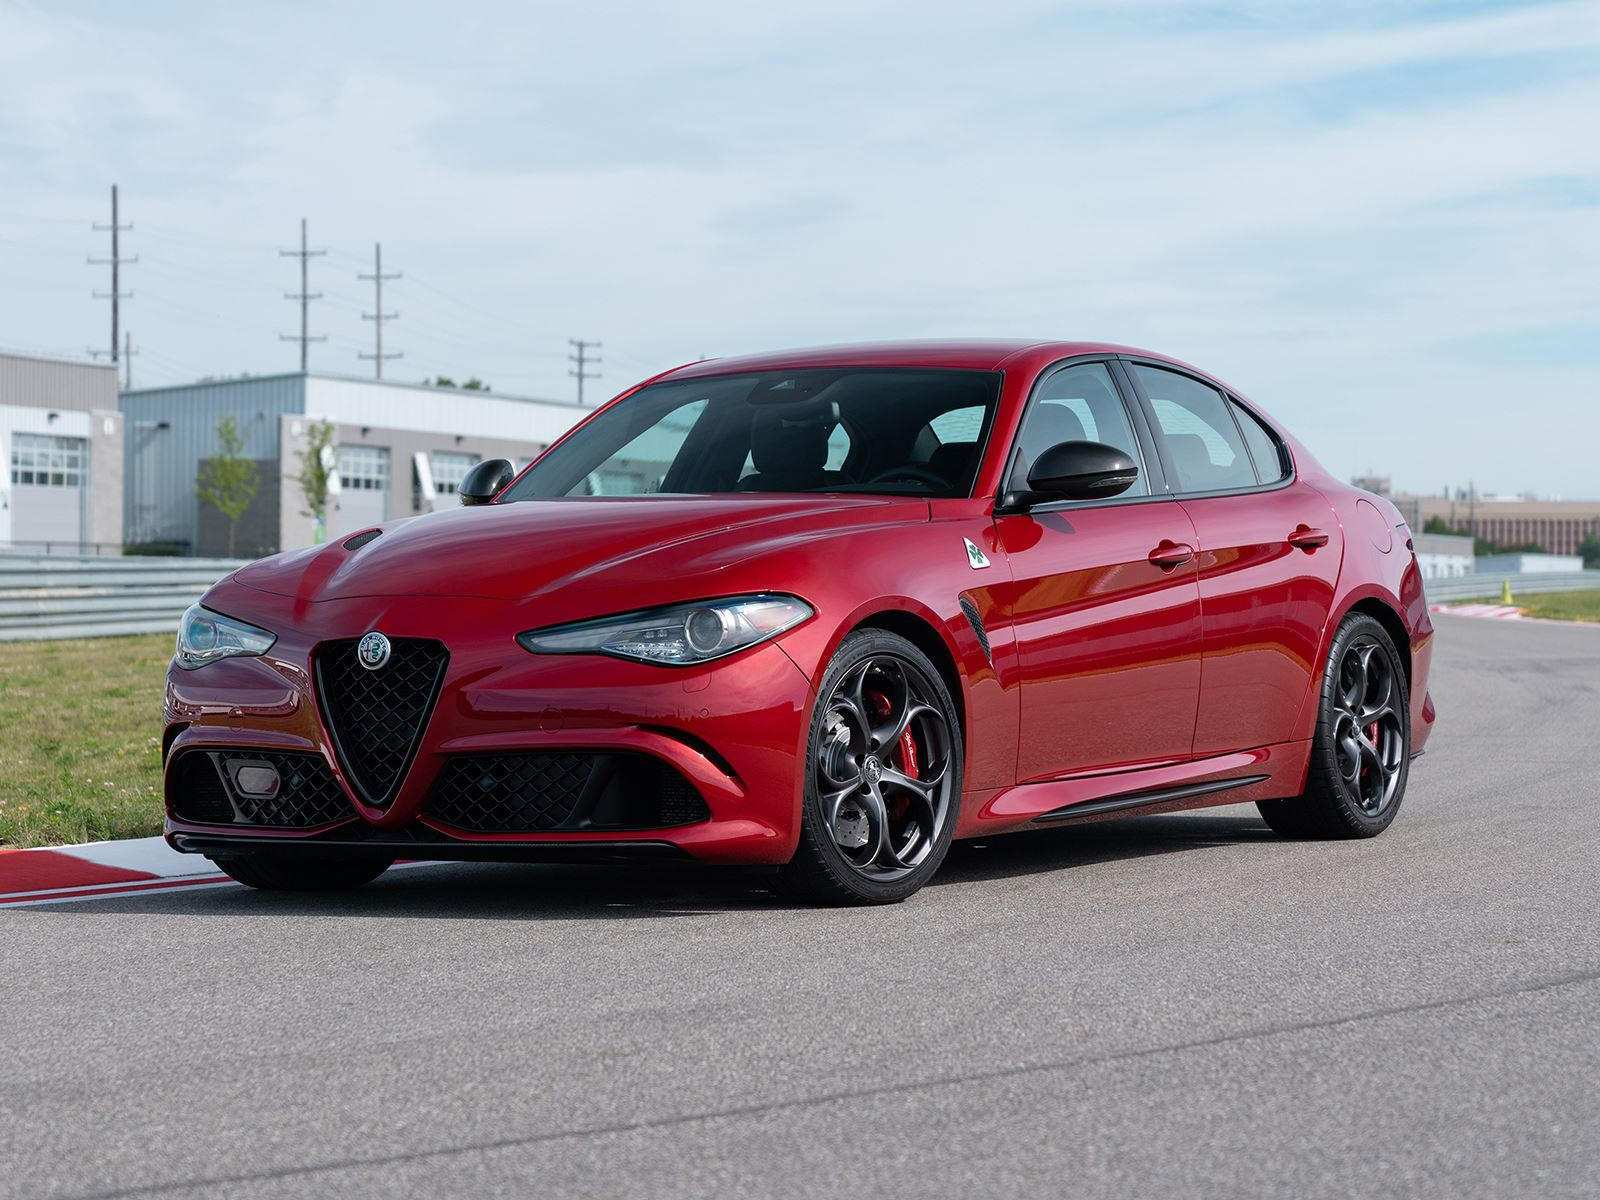 31 Best Review 2019 Alfa Romeo Configurations for 2019 Alfa Romeo